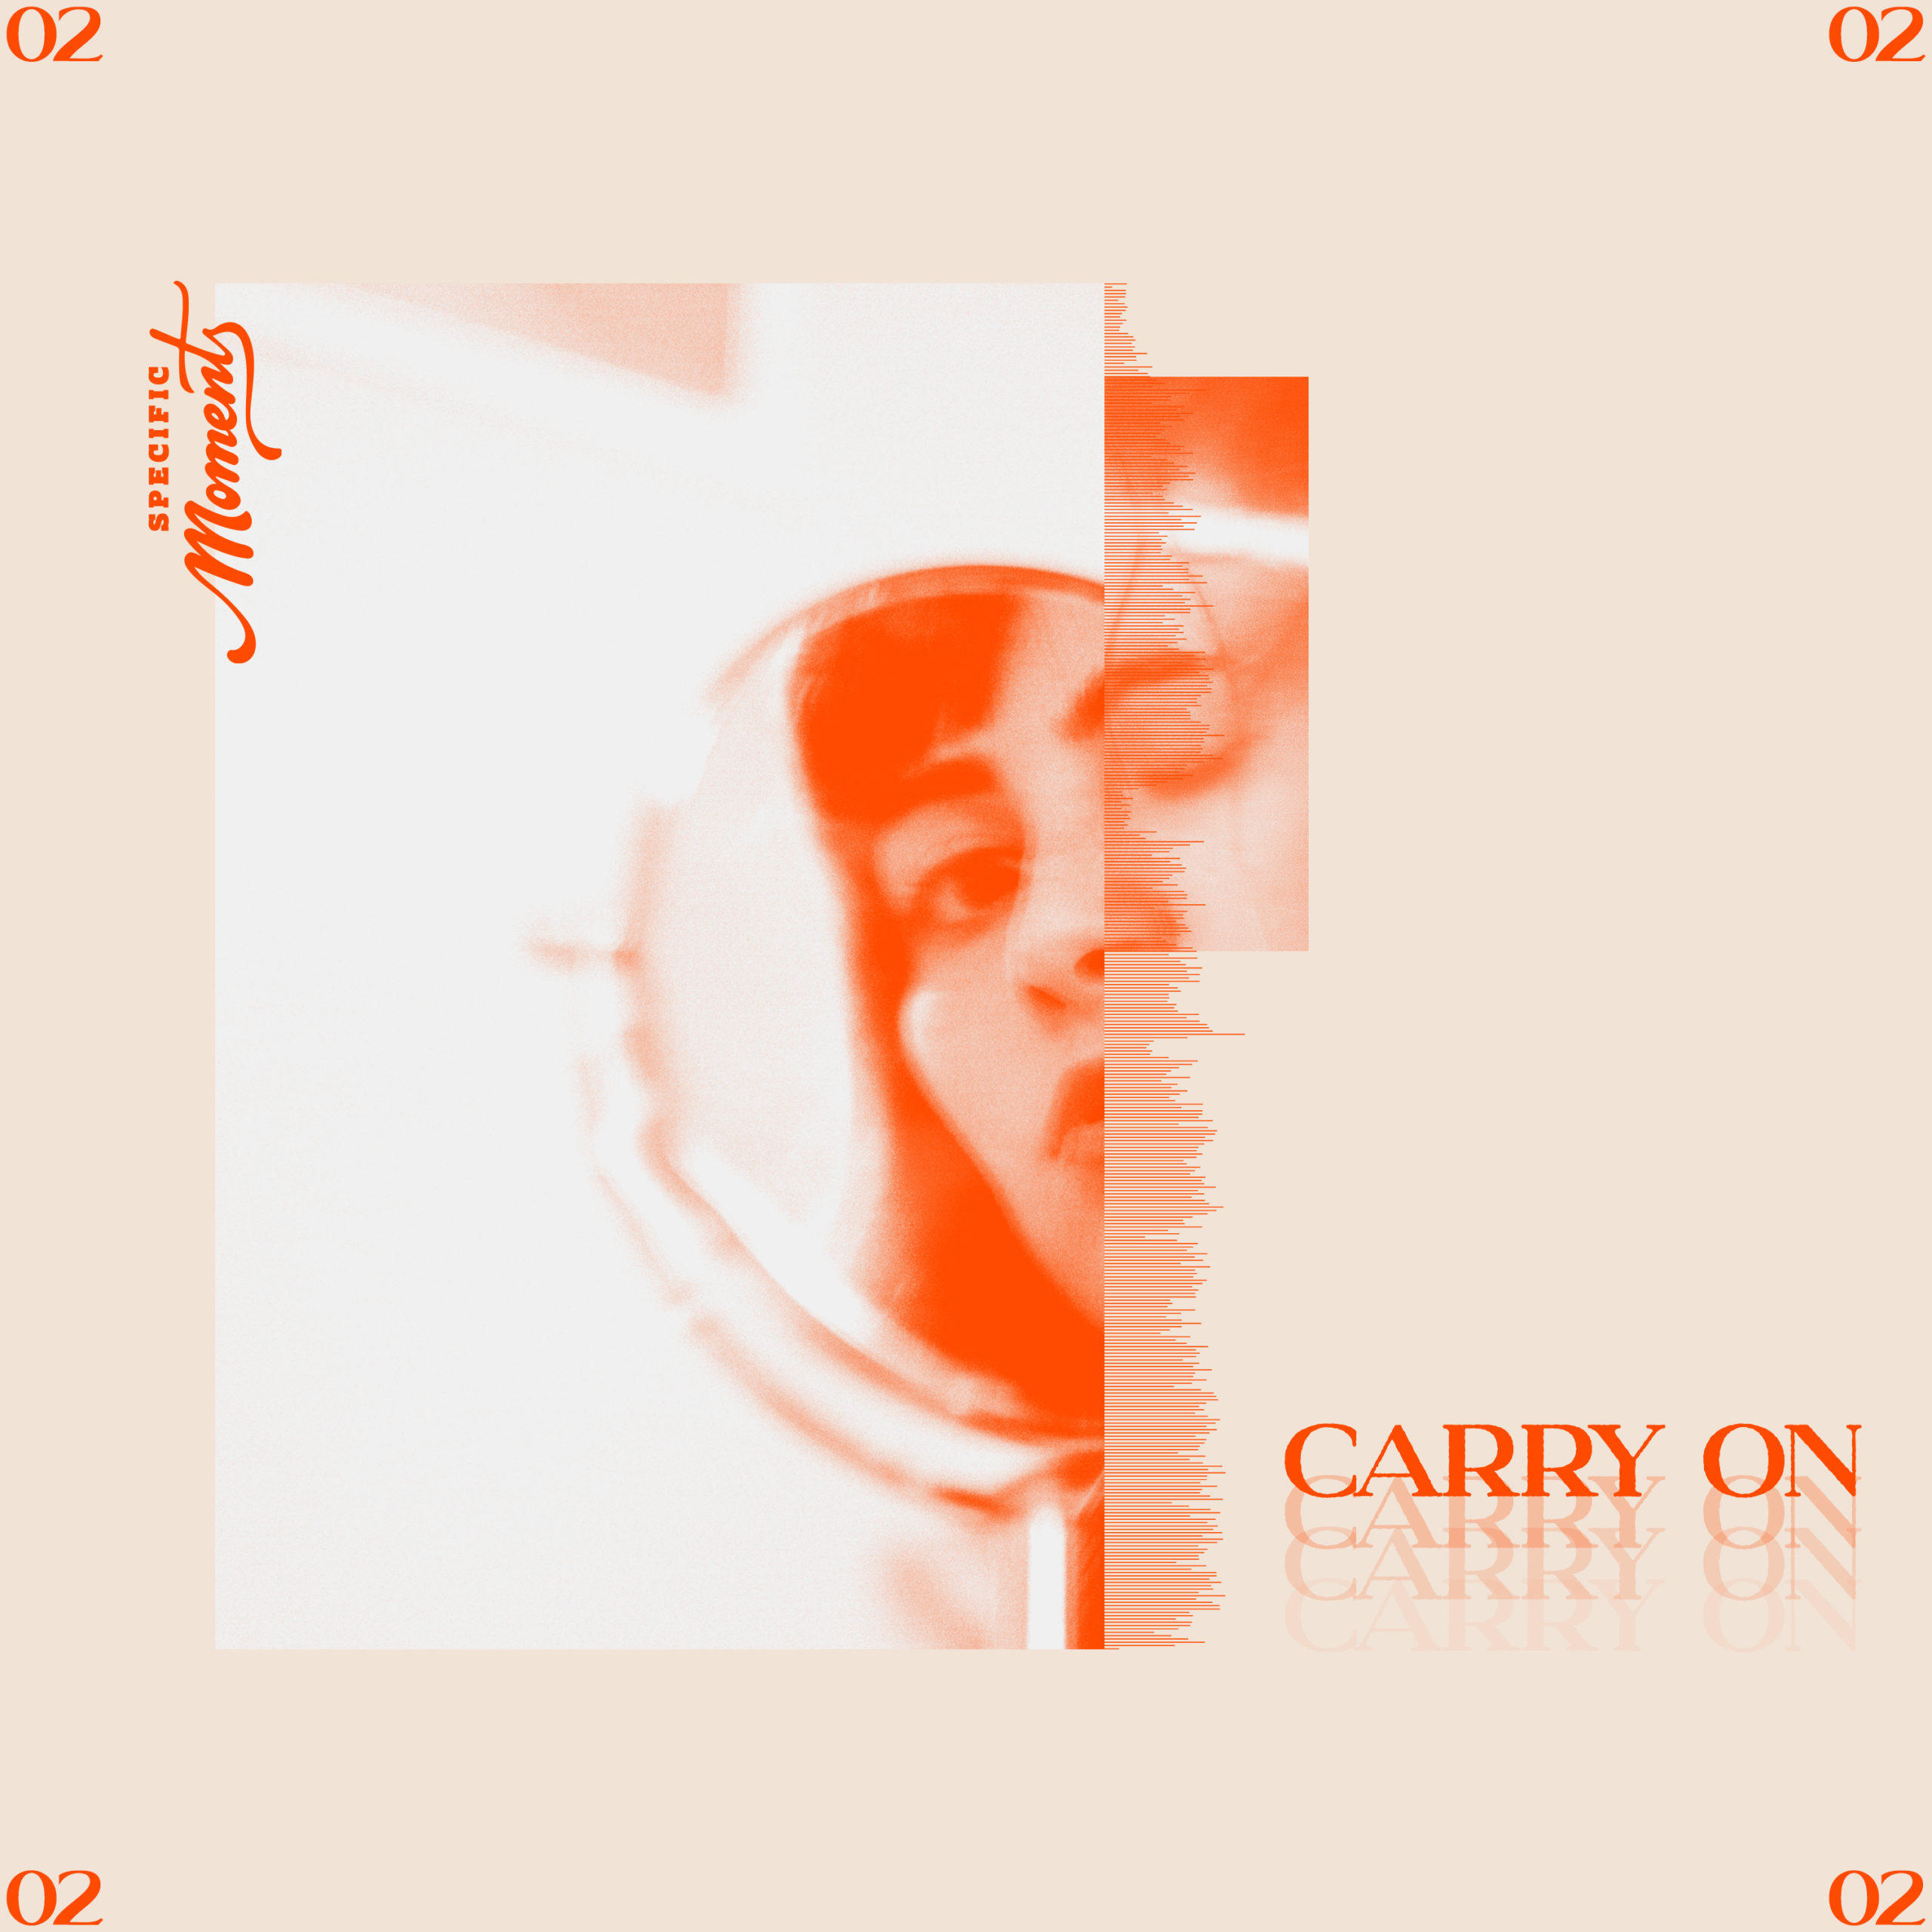 Cover art: Specific-Moments - Carry-On